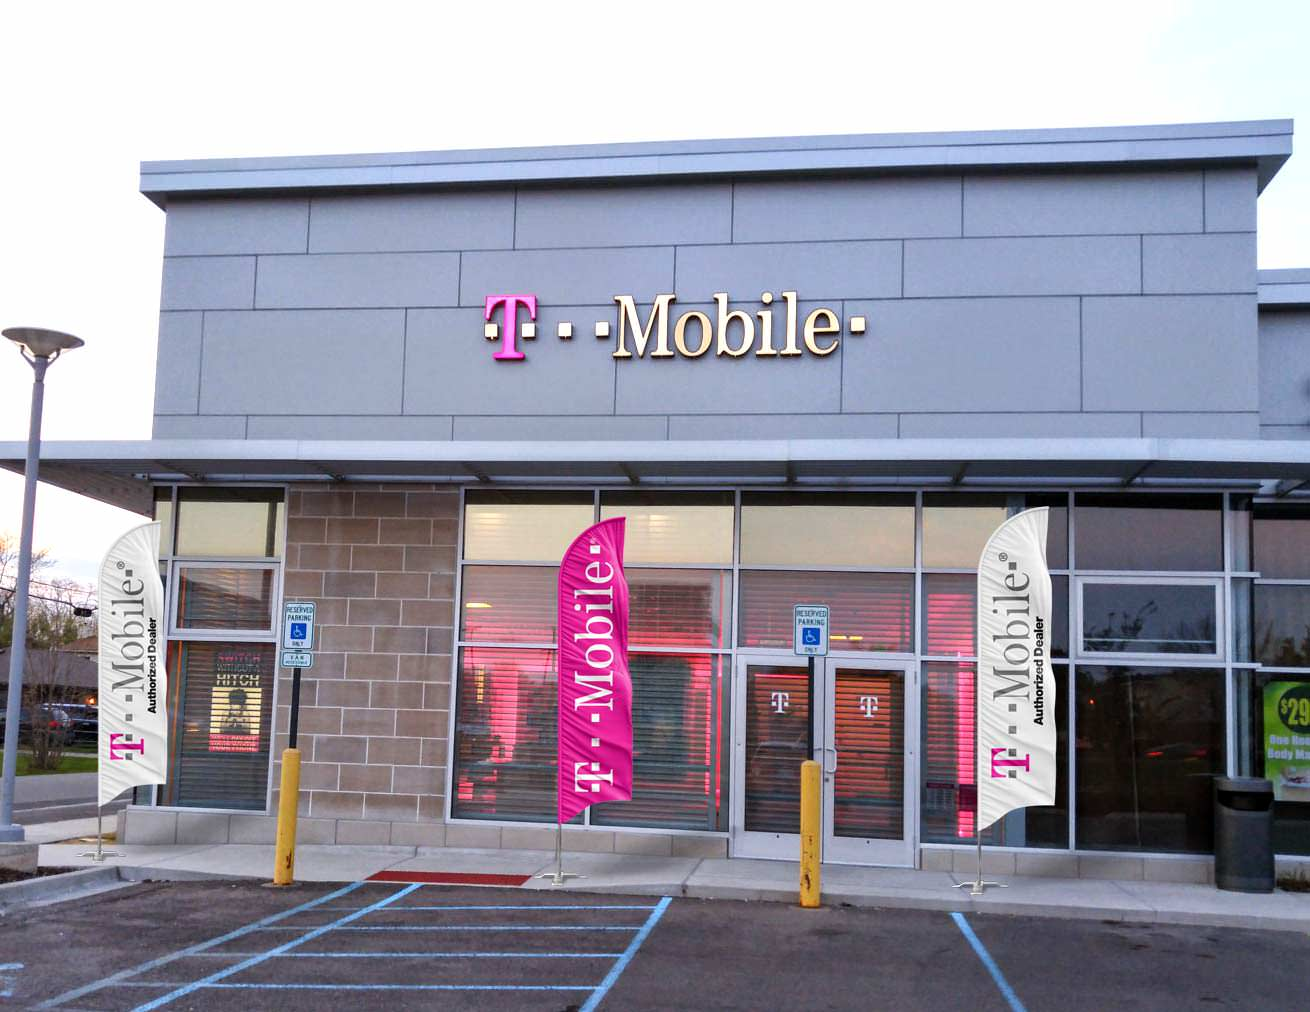 T-mobile feather flags in front of business